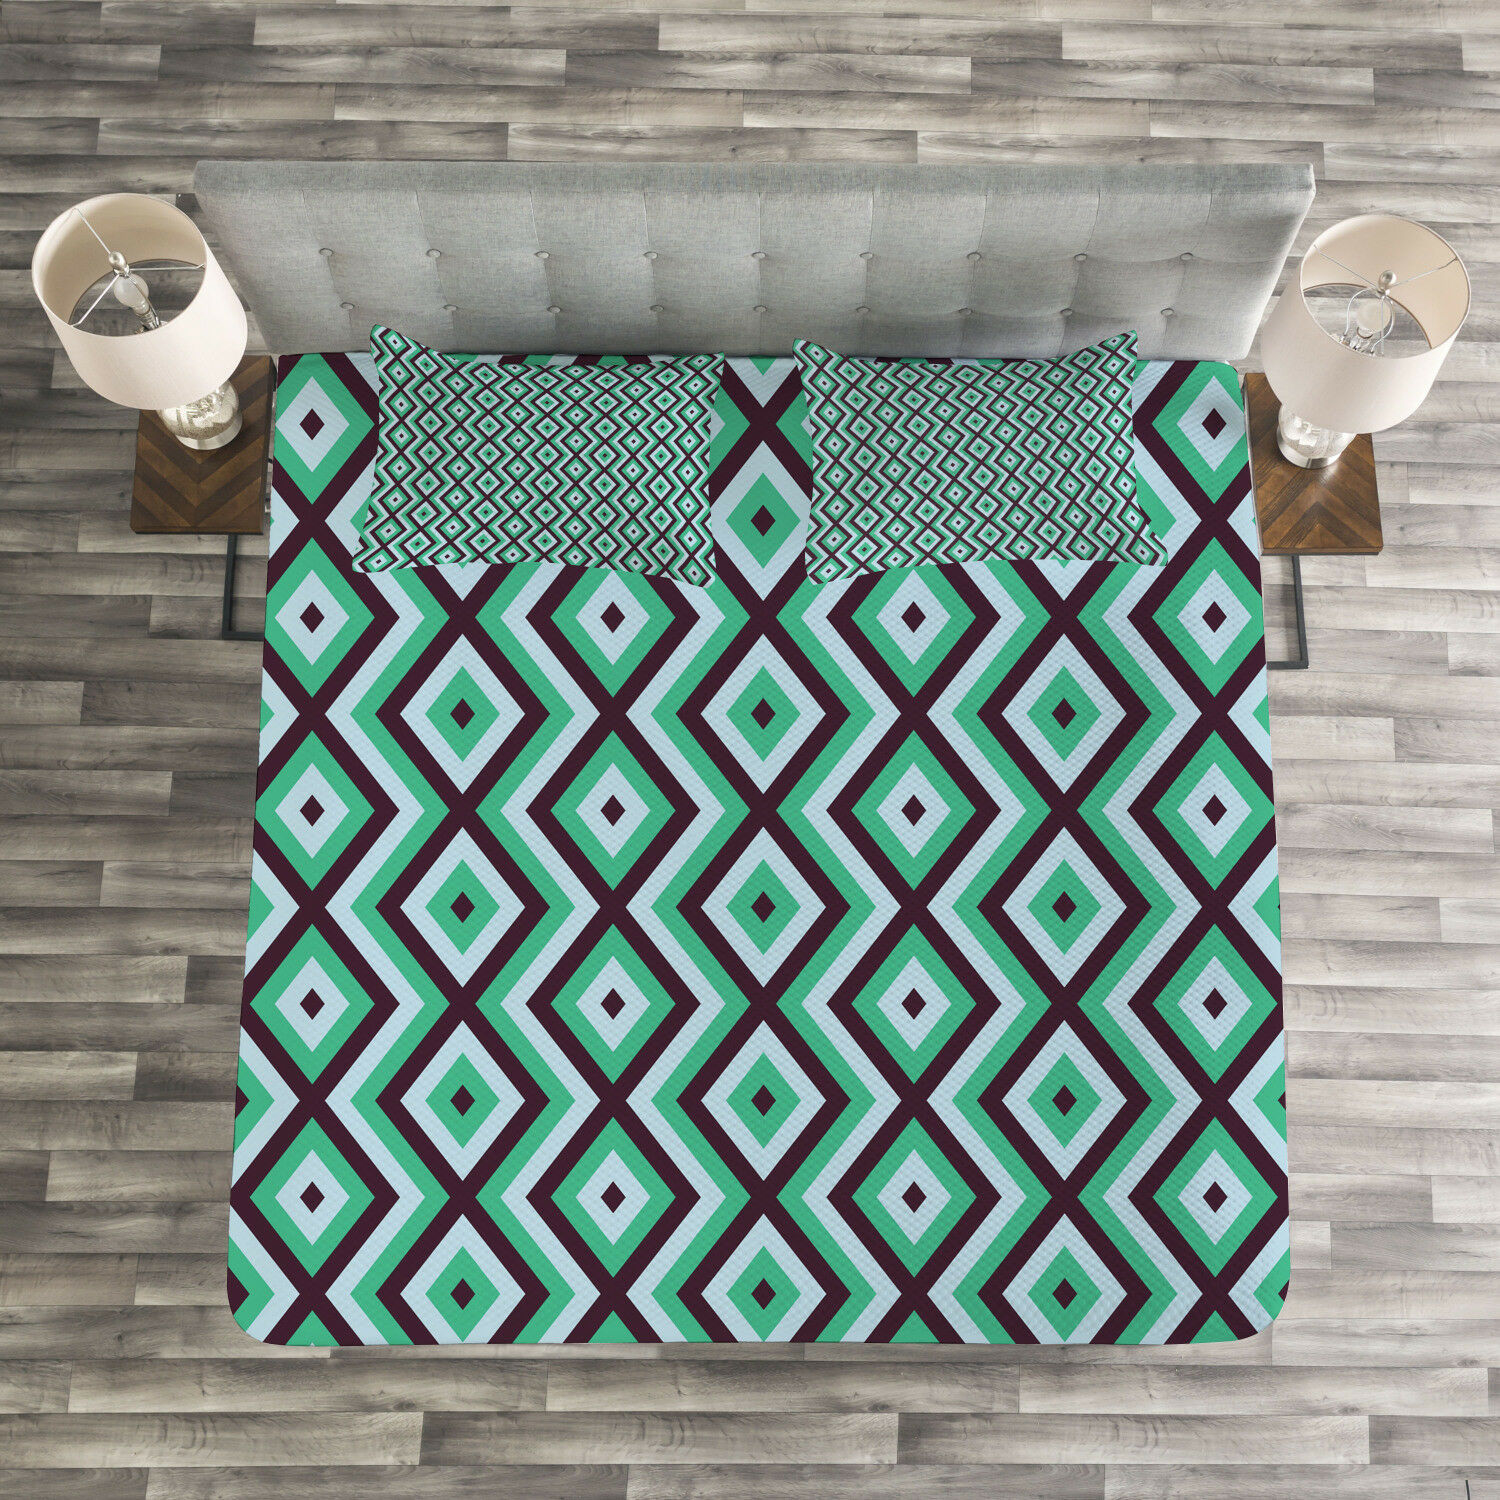 Teal and White Quilted Bedspread & Pillow Shams Set, Retro Diamond Line Print